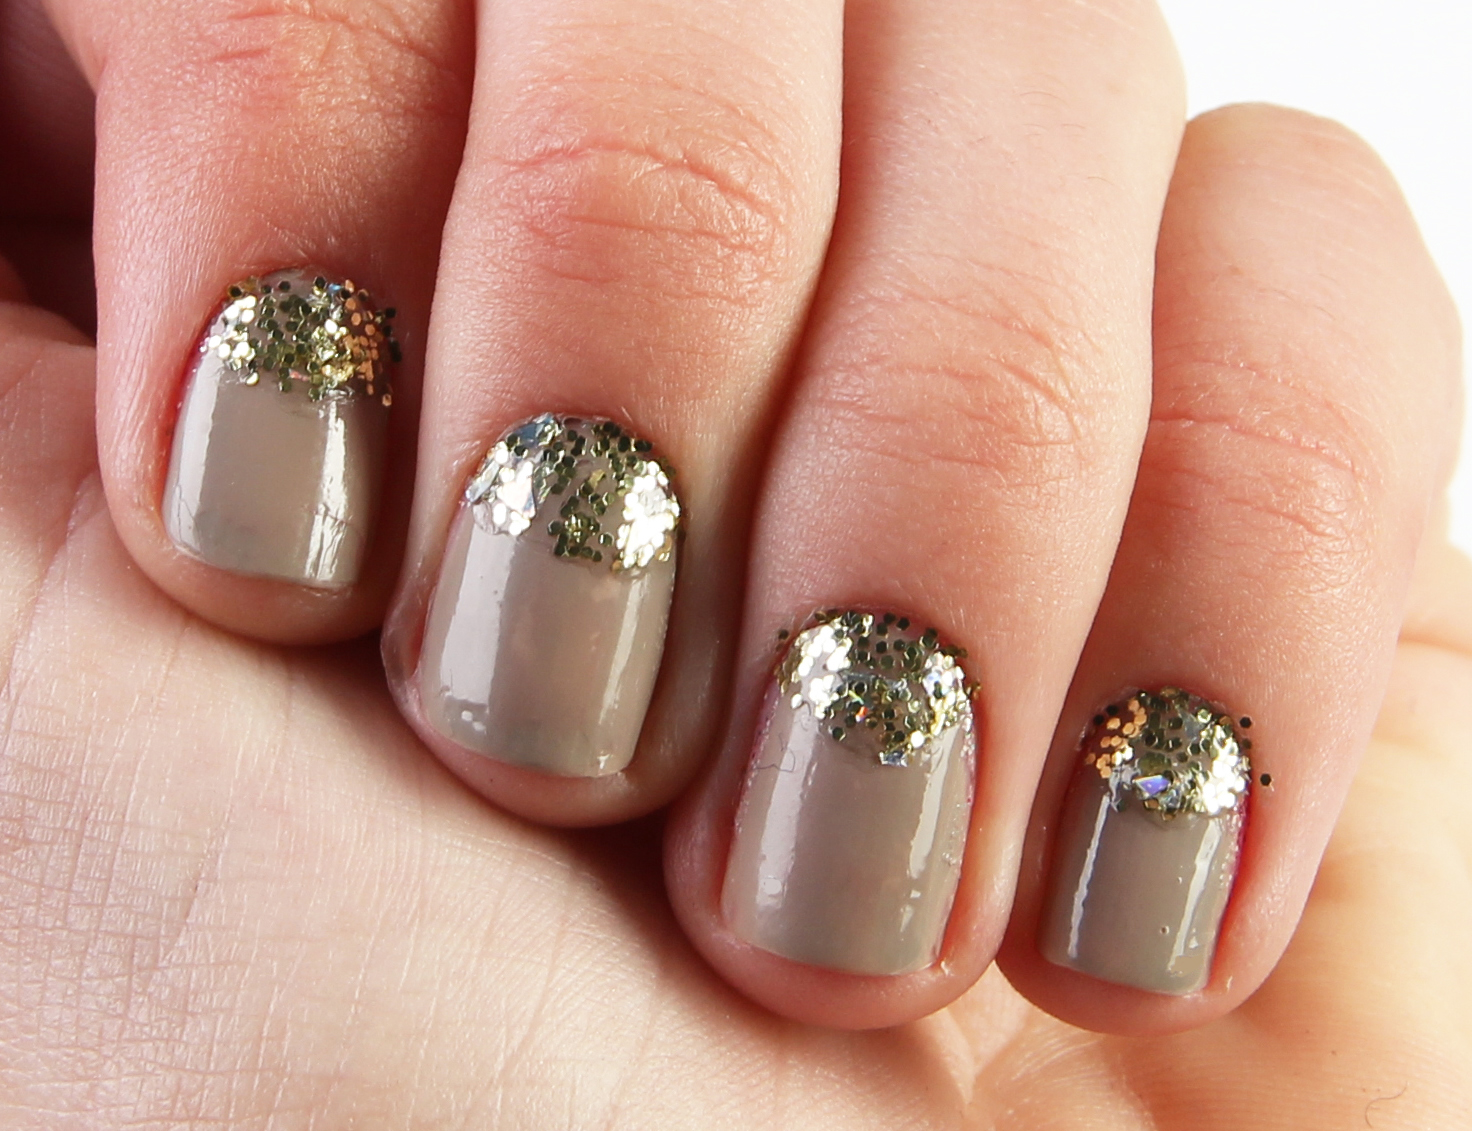 Easy Nail Art Designs For Beginners - Cool Nail Art Designs 2014